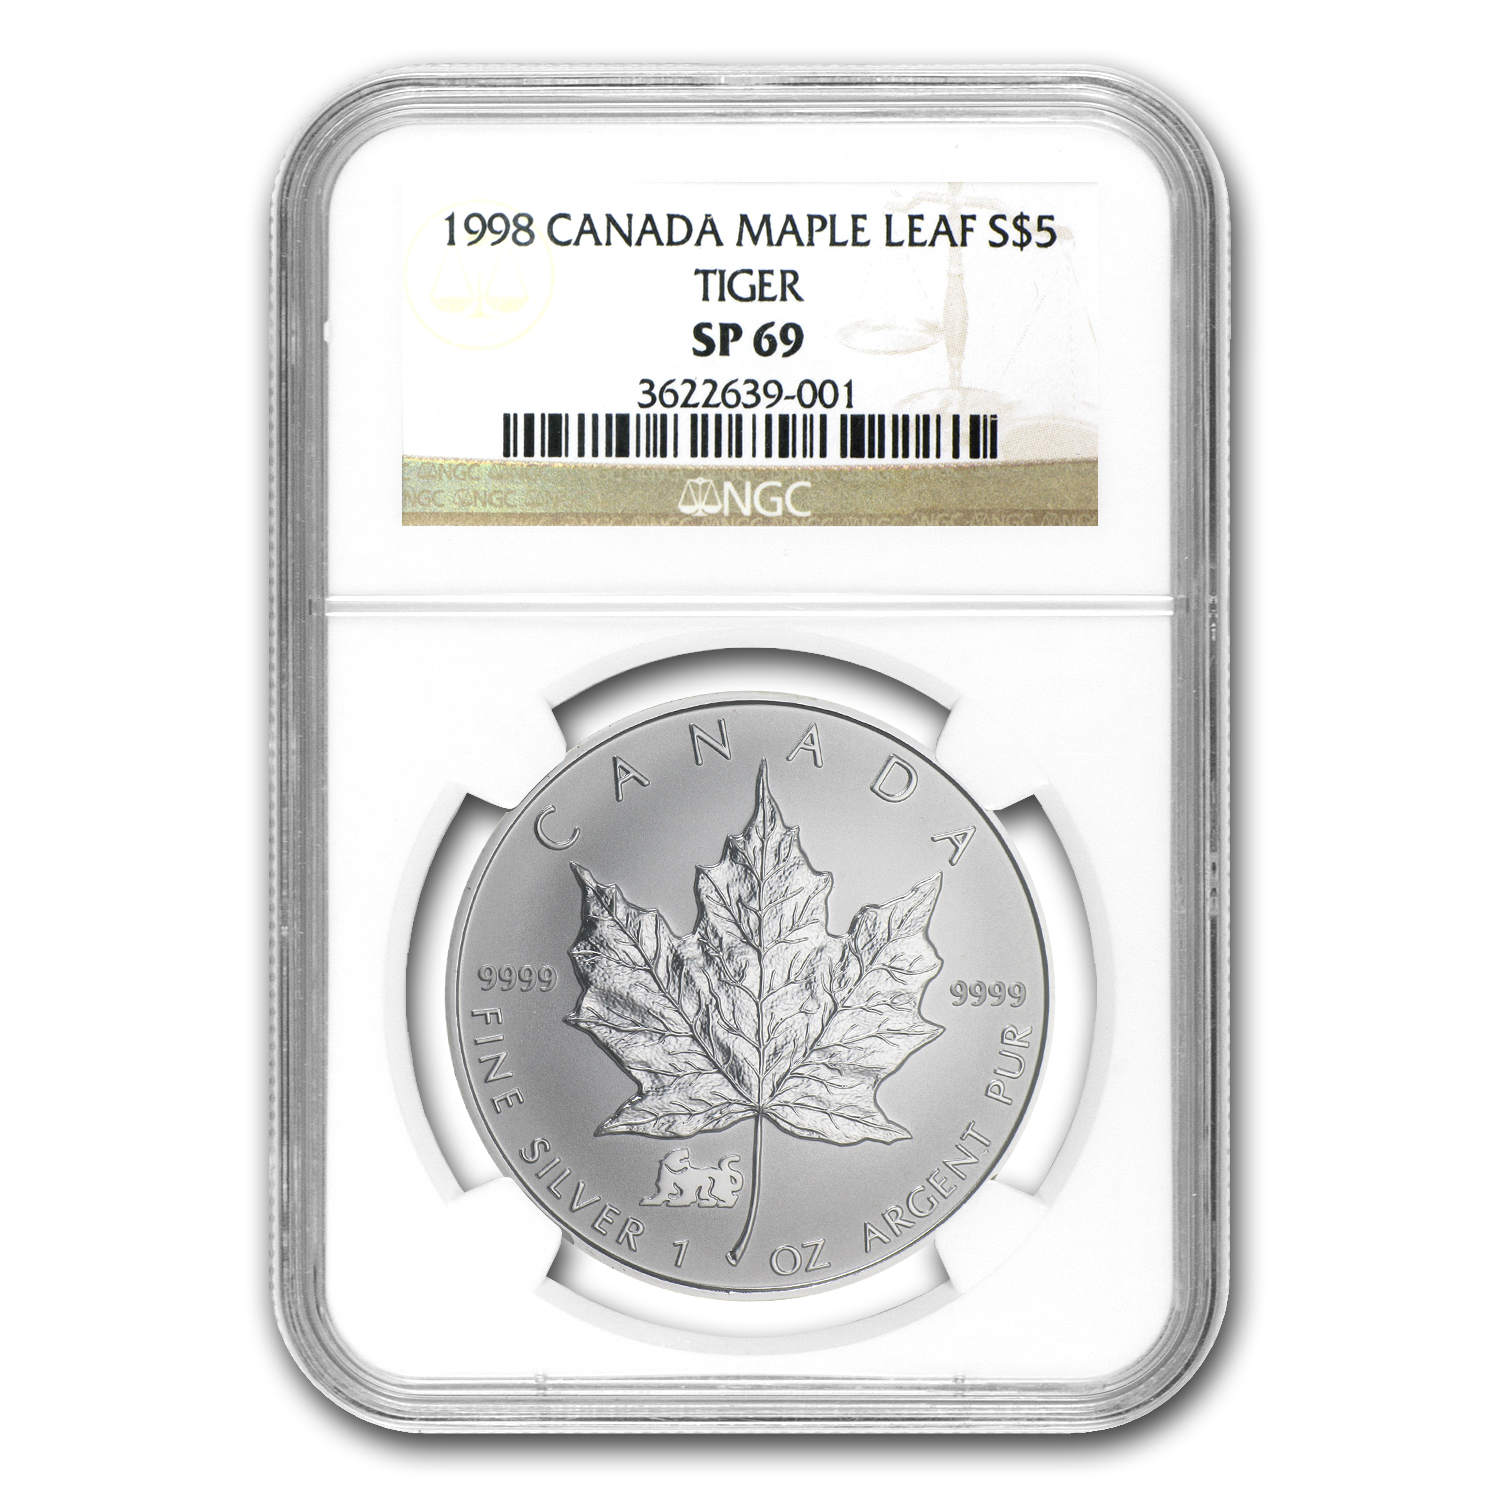 1998 1oz Silver Canadian Maple Leaf - Lunar TIGER Privy SP-69 NGC